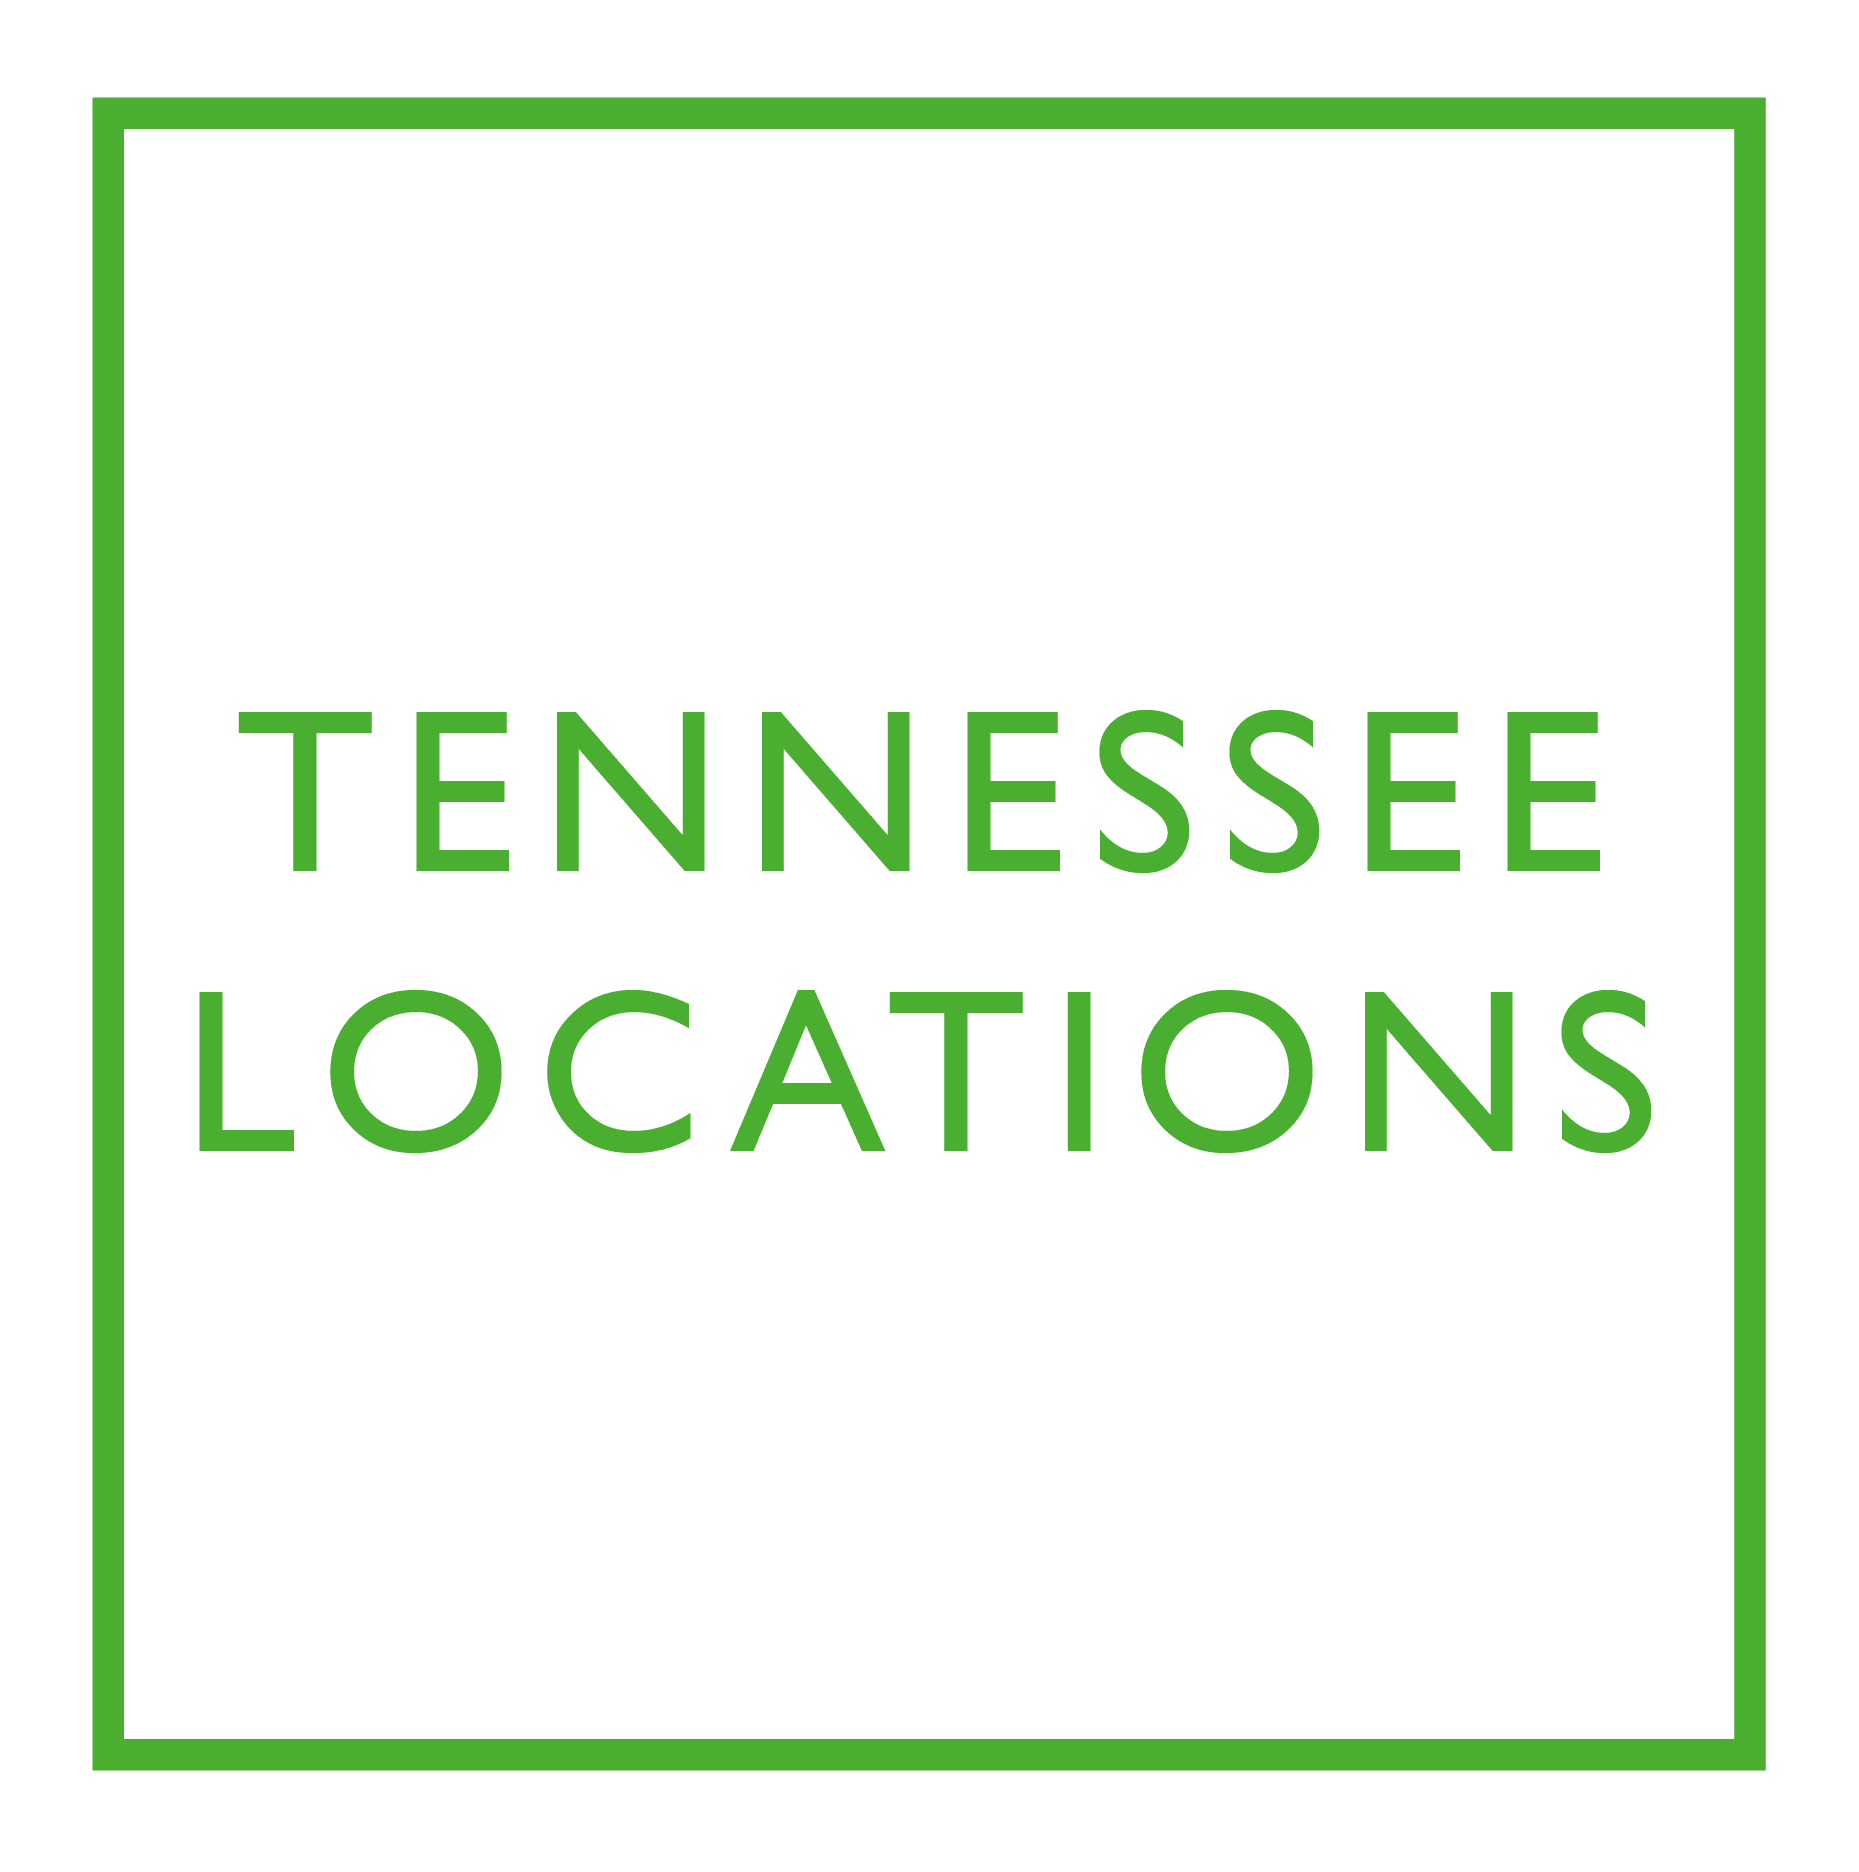 Check out our locations in Tennessee